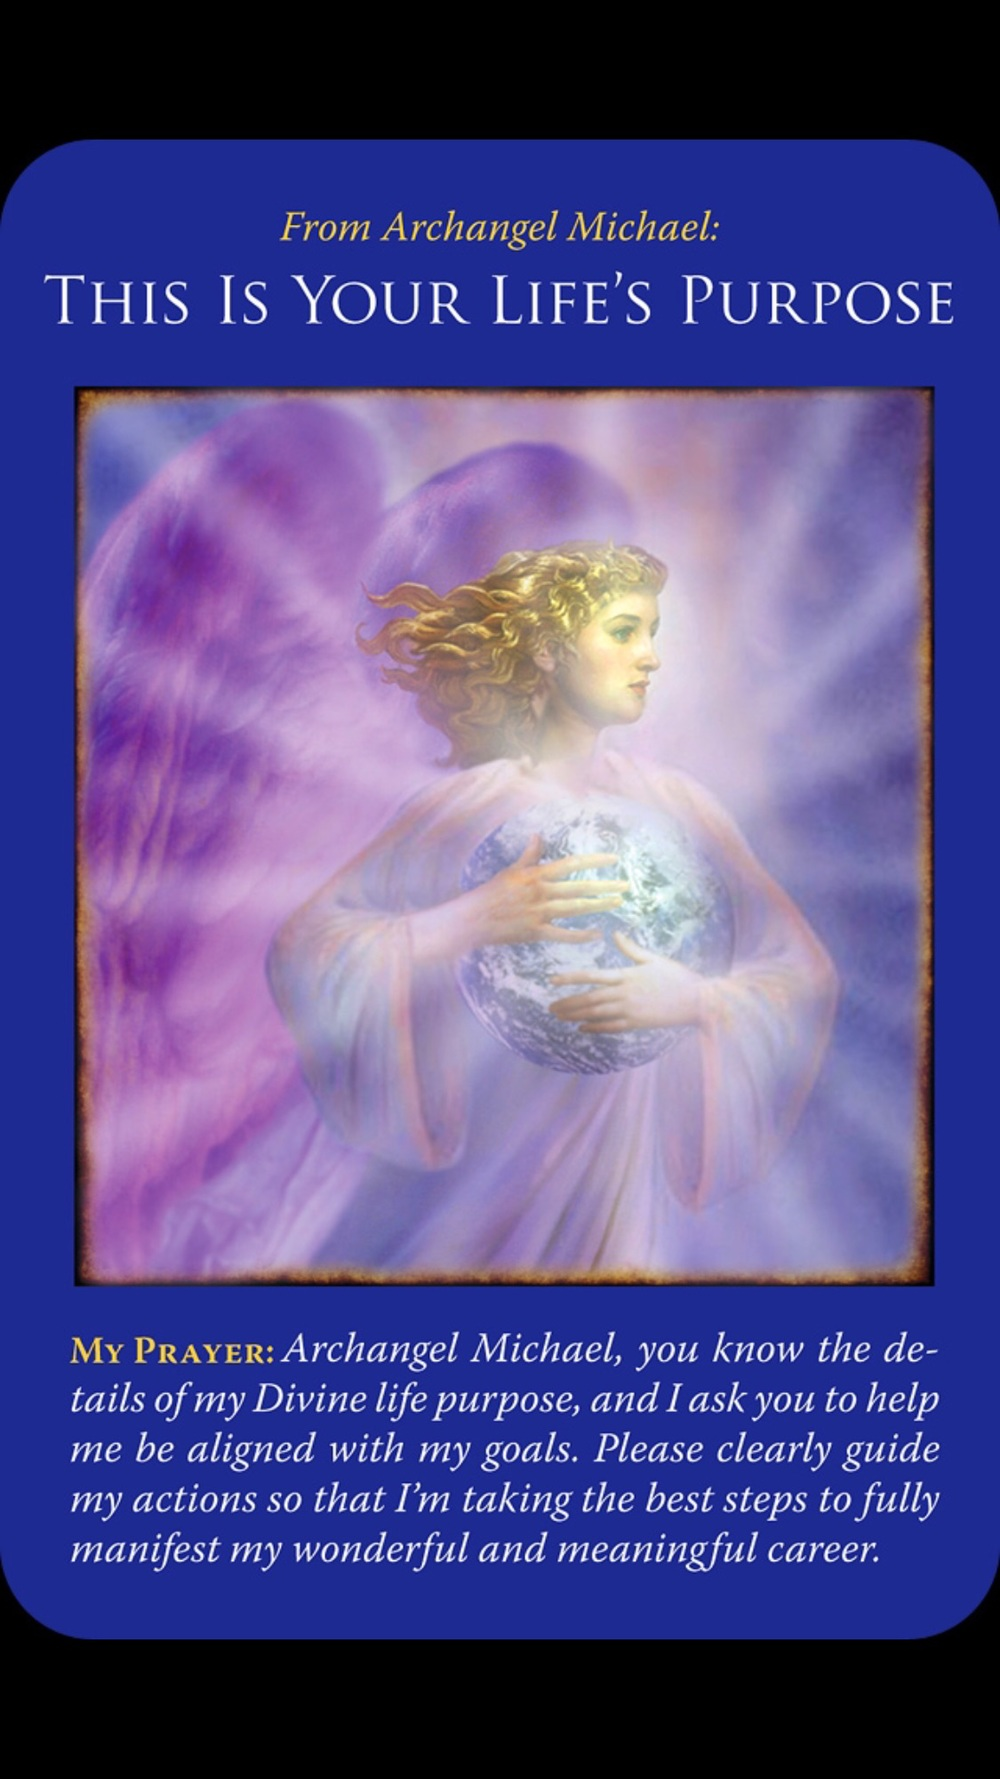 Deck Used: The Archangel Michael Oracle Cards